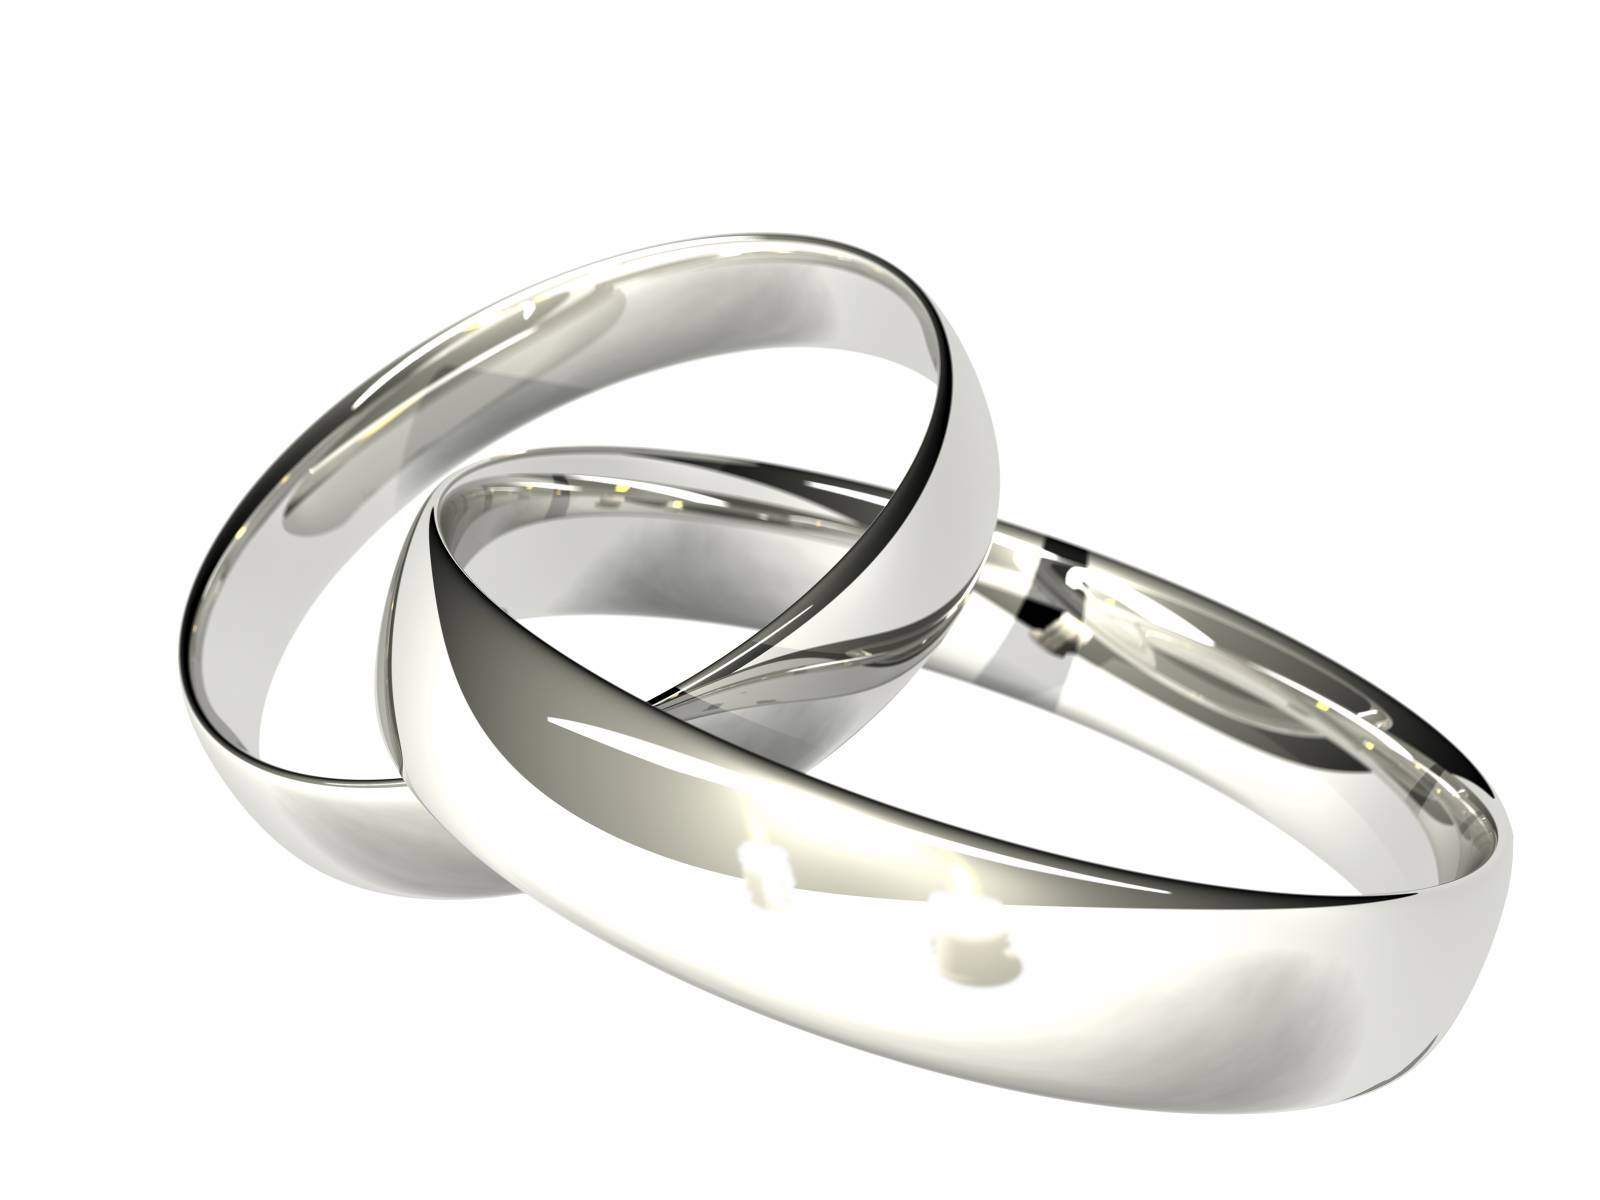 New 25Th Wedding Anniversary Rings | Topup Wedding Ideas Pertaining To Most Popular Silver 25Th Anniversary Rings (View 12 of 25)